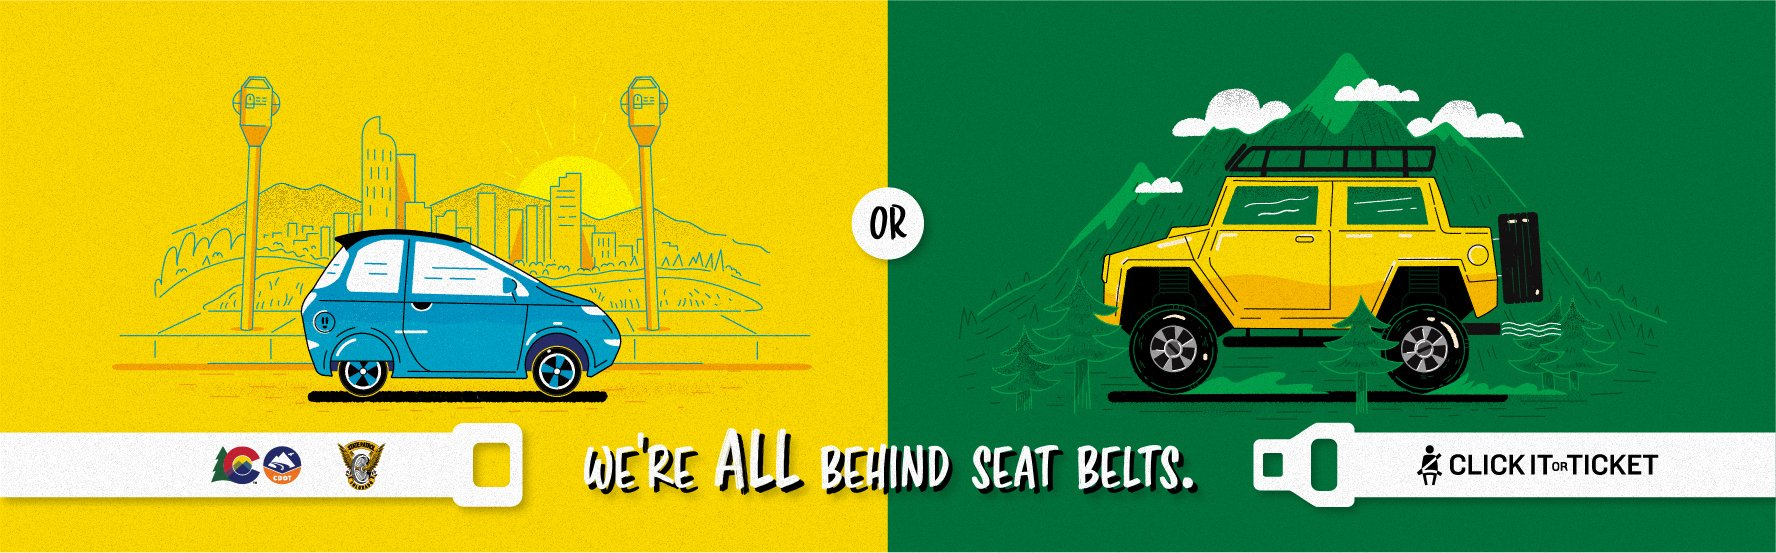 Vehicles, we're all behind seat belts, city, mountains, SUV, electric vehicle